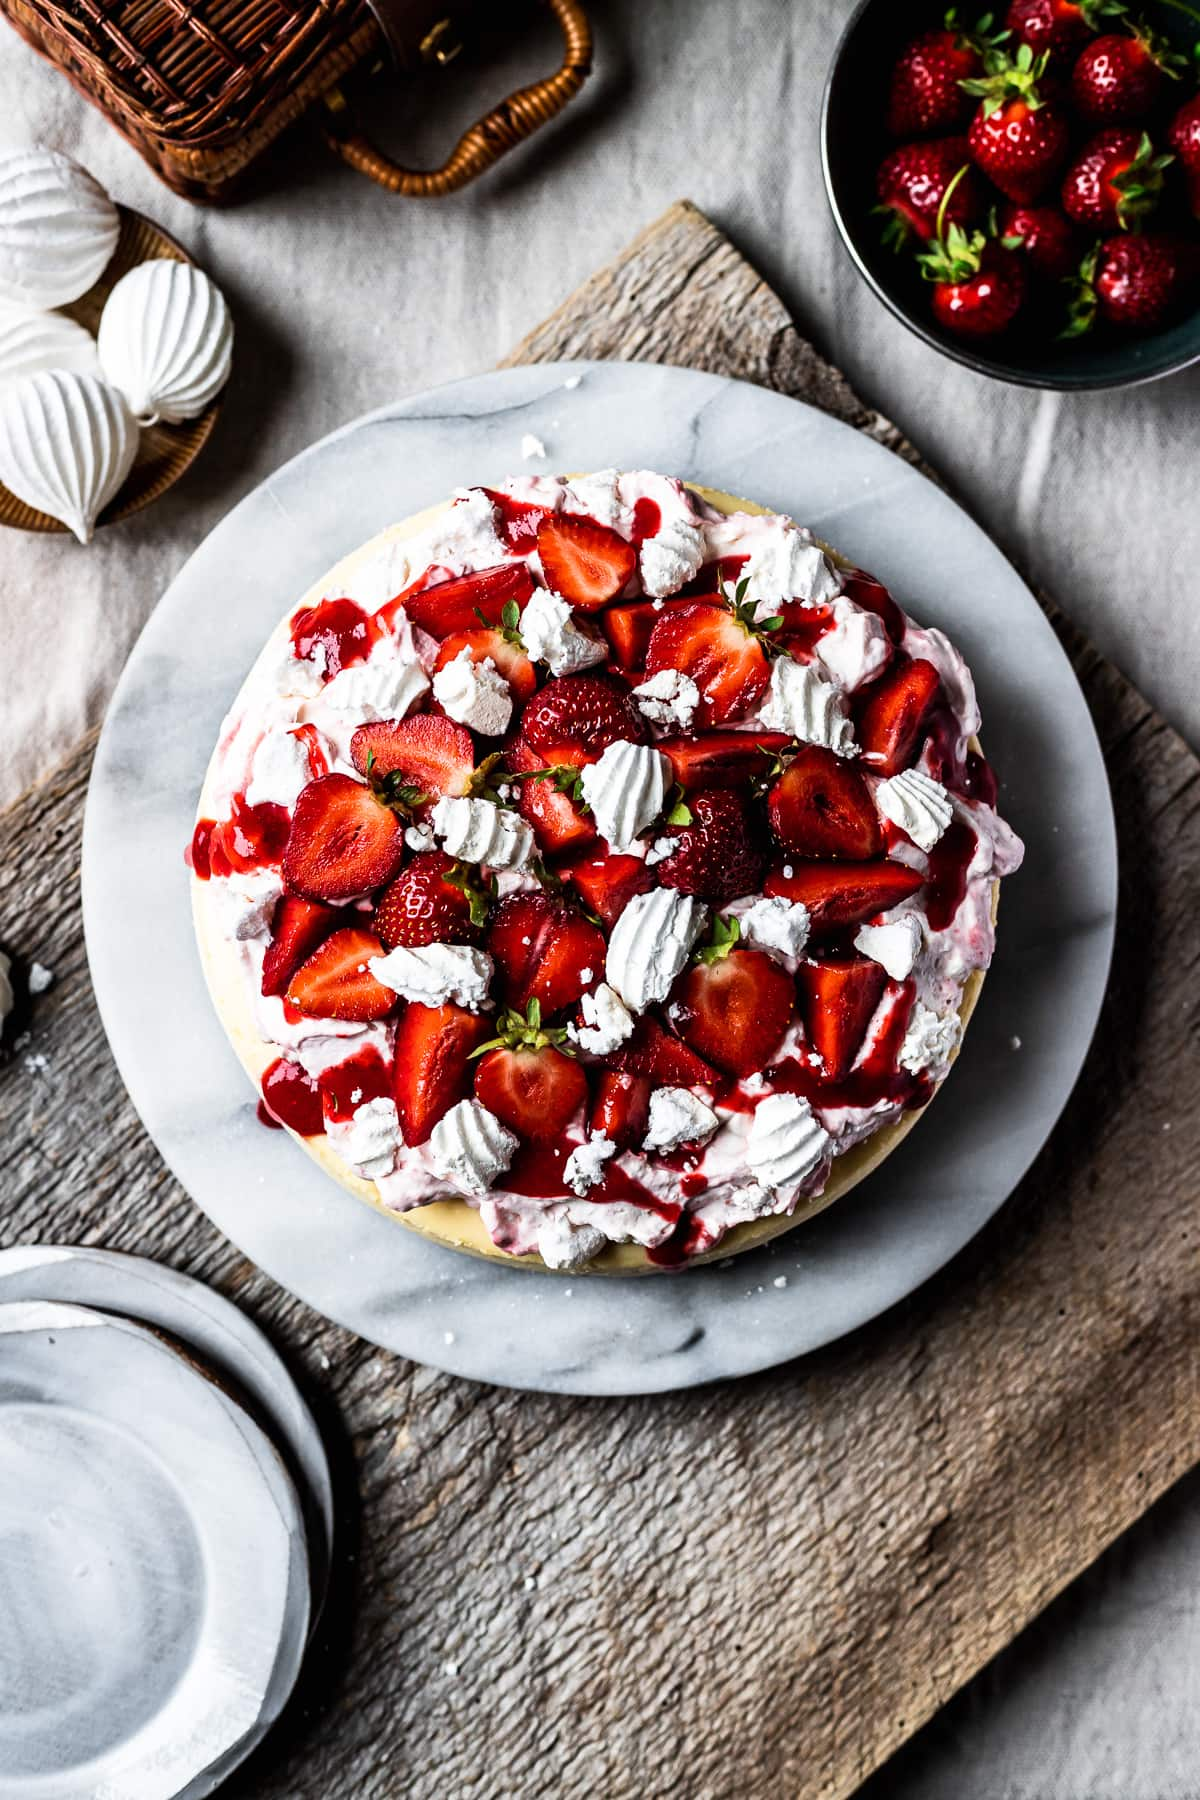 Top view of strawberry topped cheesecake on a marble platter. A rustic wooden board serves as a background. A bowl of fresh strawberries sits nearby.